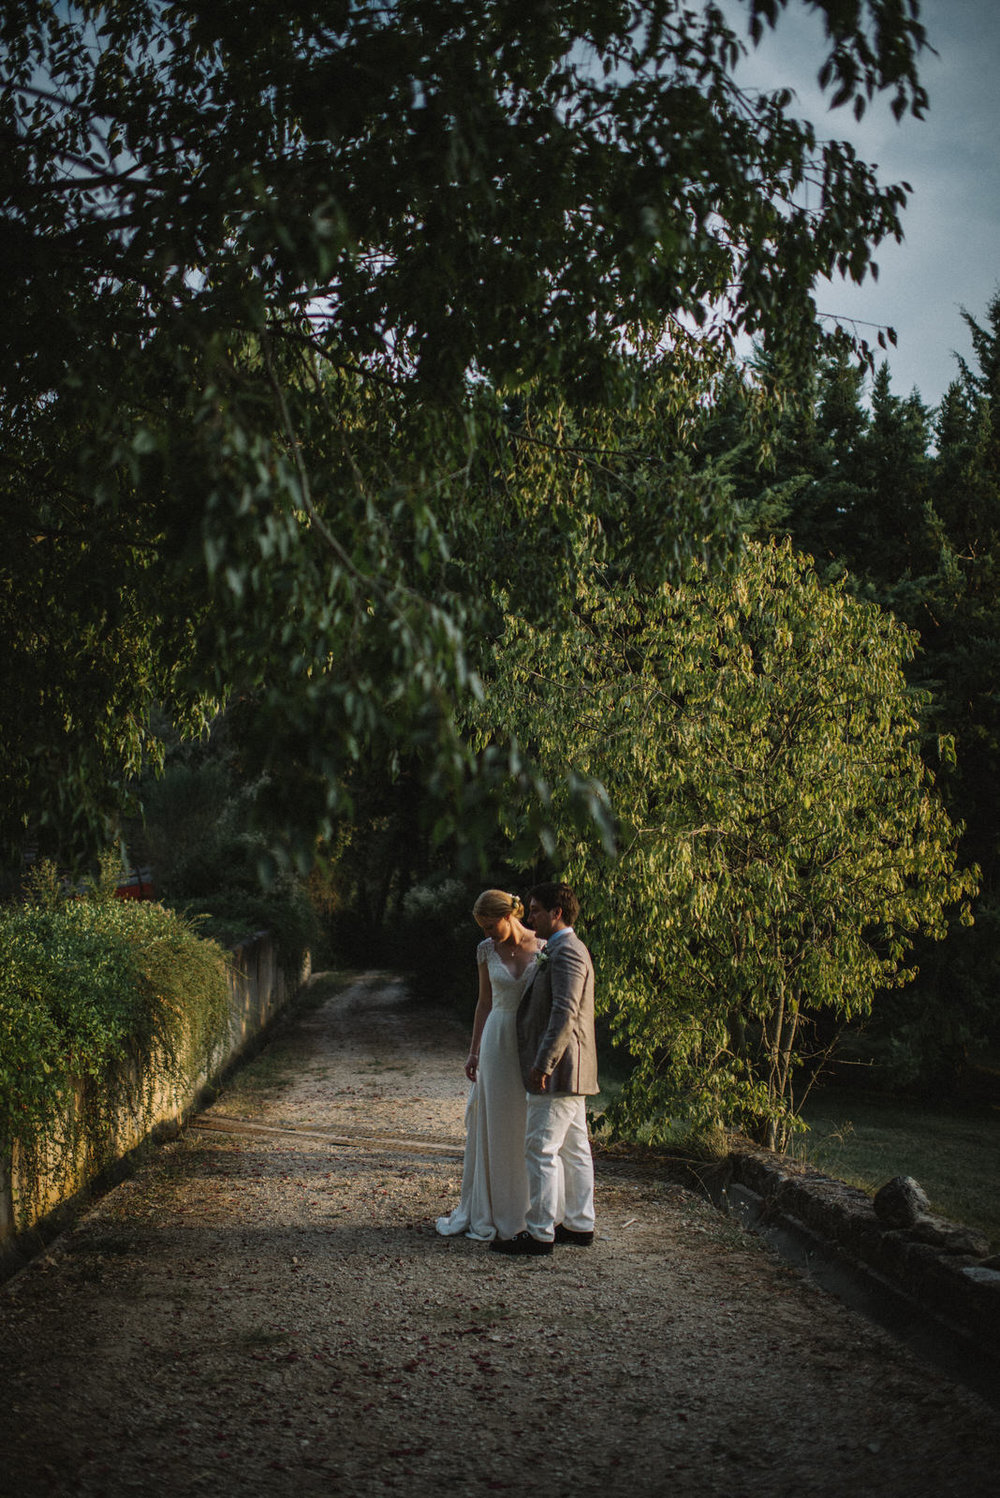 027-LOURMARIN-WEDDING-PHOTOGRAPHER-PROVENCE-WEDDING-ALTERNATIVE-WEDDING-PHOTOGRAPHY-FRANCE-PROVENCE-GARDEN-WEDDING.JPG